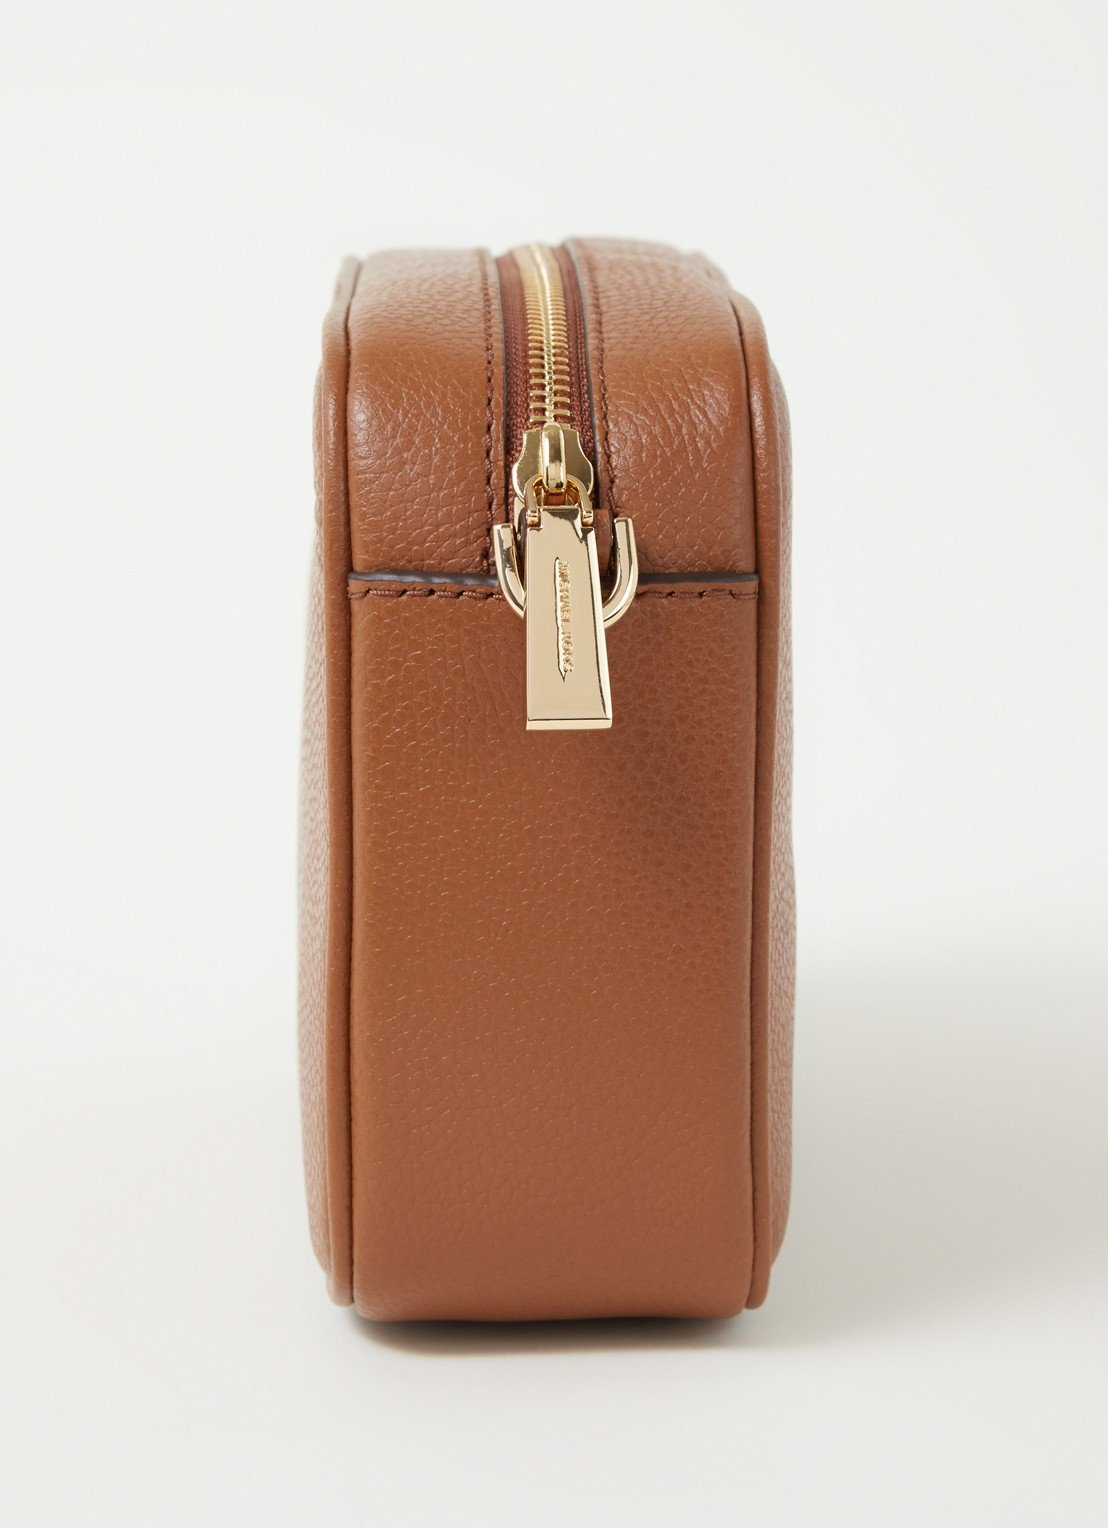 Michael Kors Camera Bag Camel